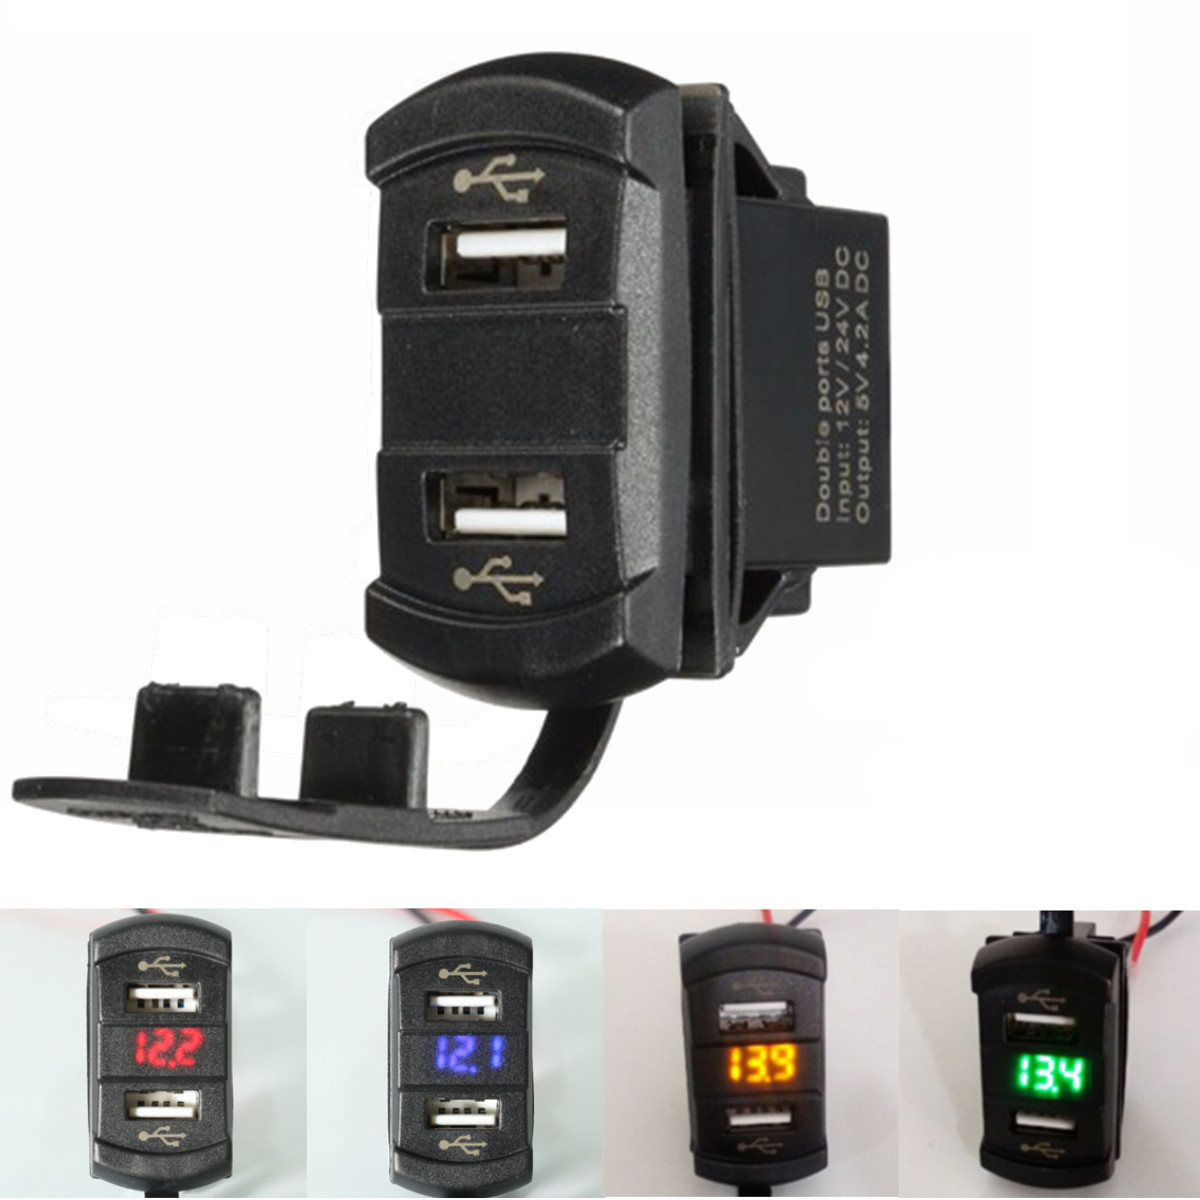 12V 4.2A Dual Usb Charger LED Volt Meterr Voltage Meter